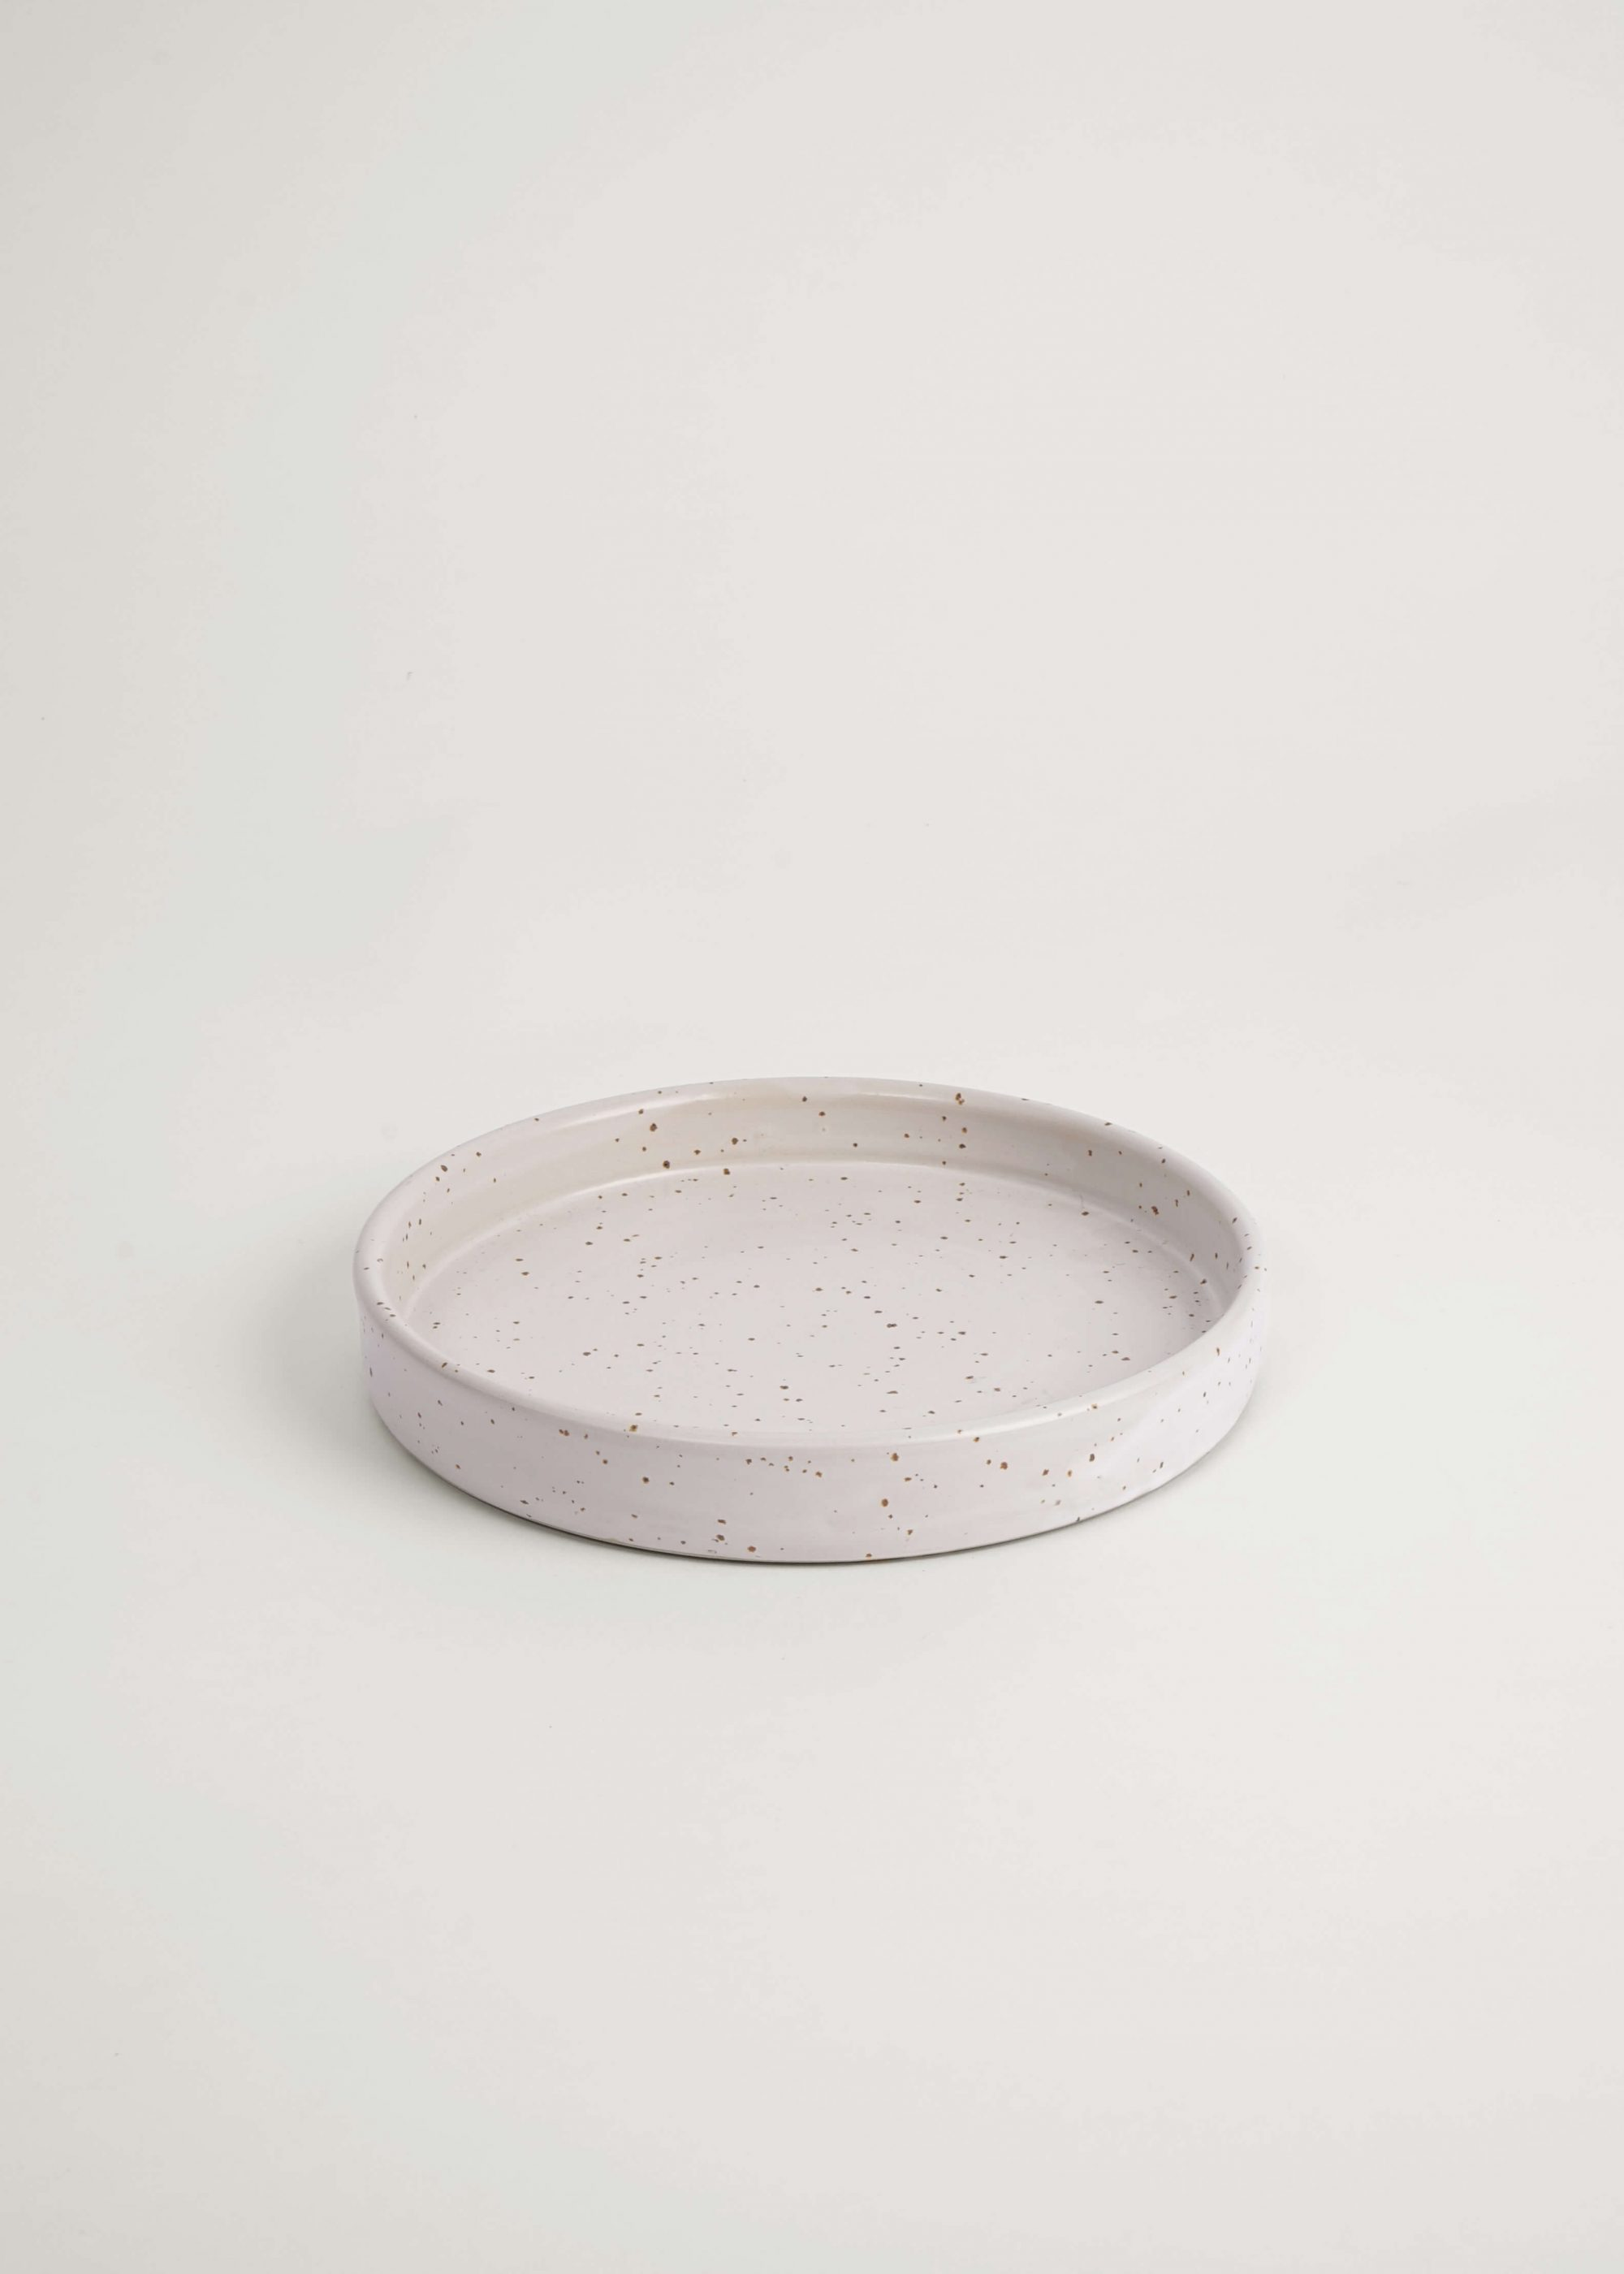 Product image for N° ICD14 Balzar Planter Plate L